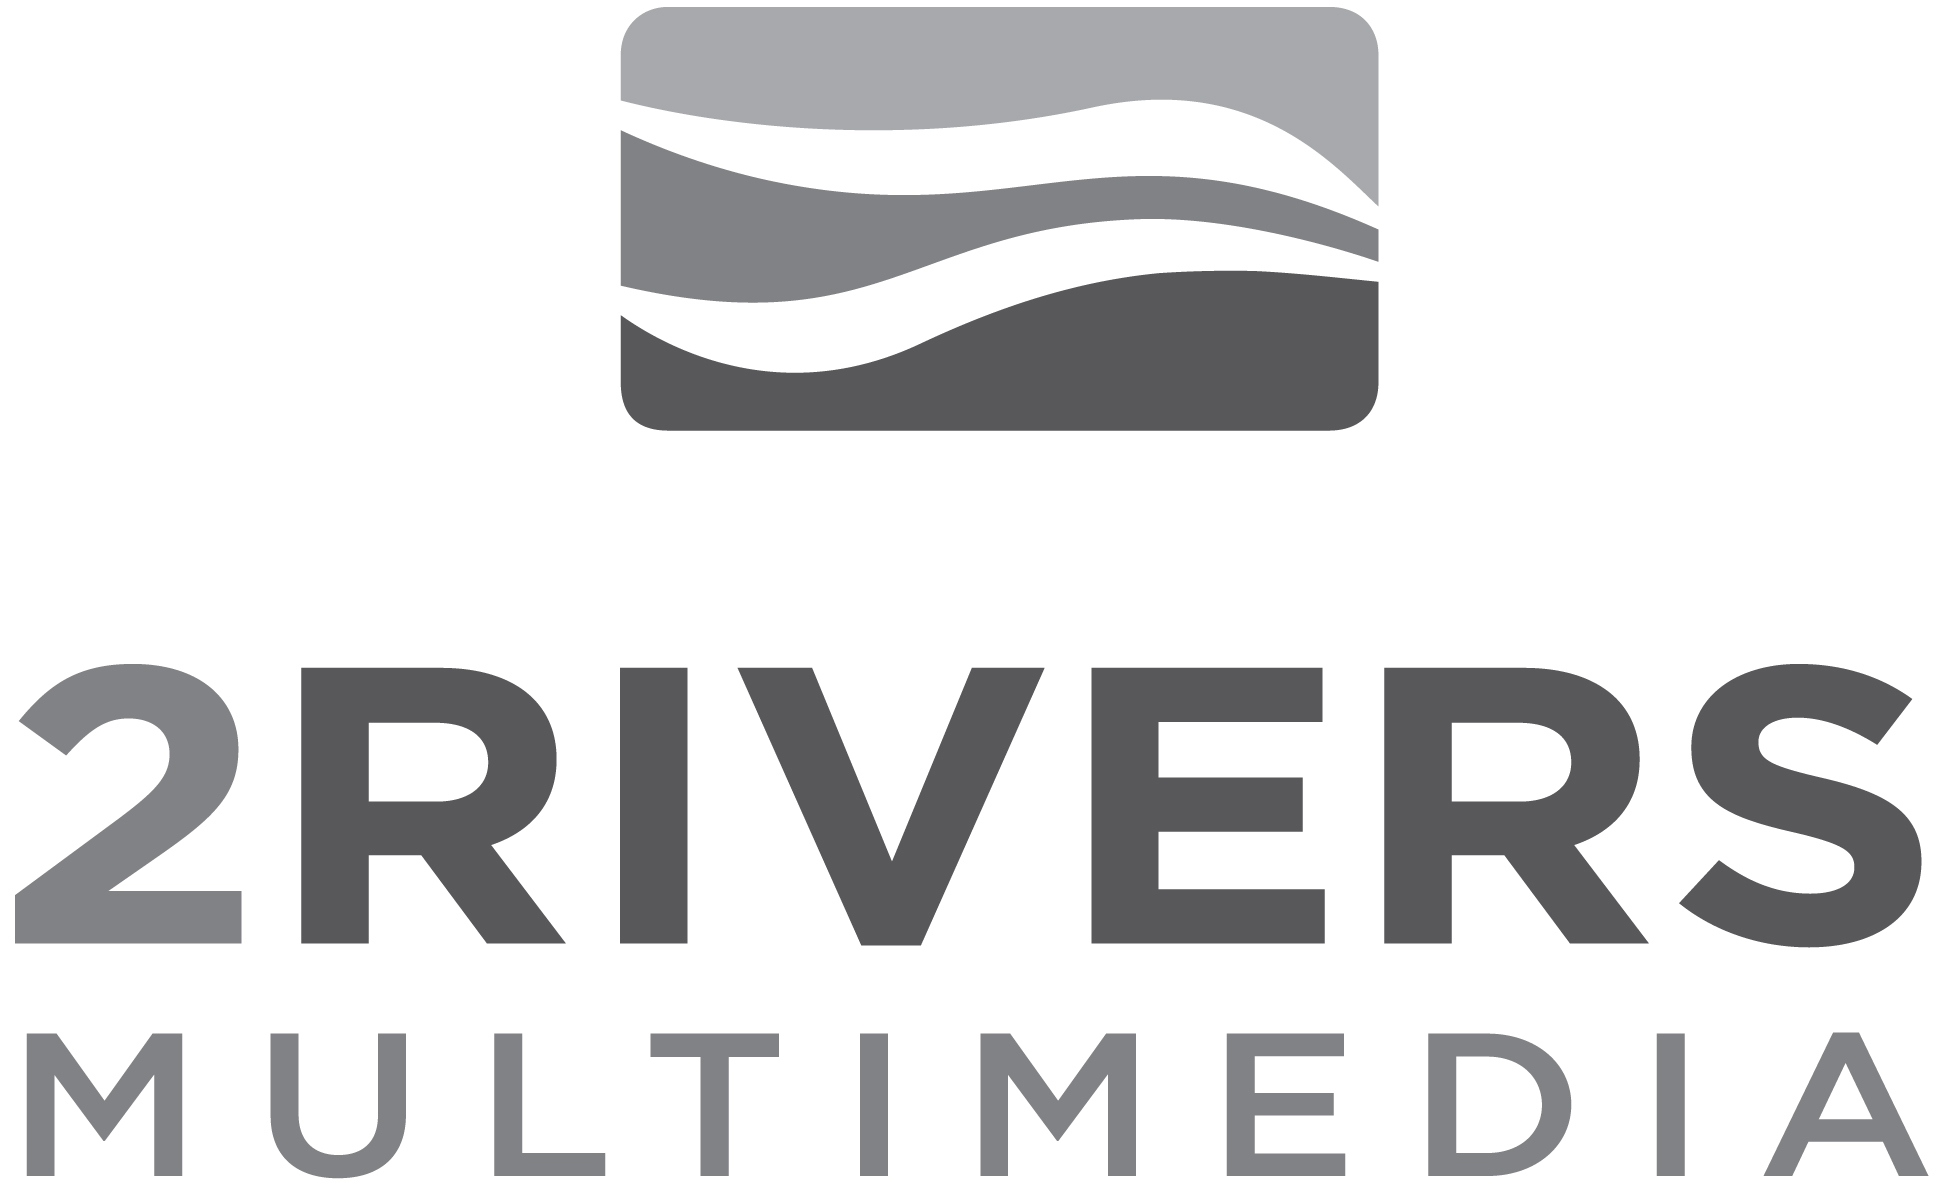 2 Rivers Multimedia